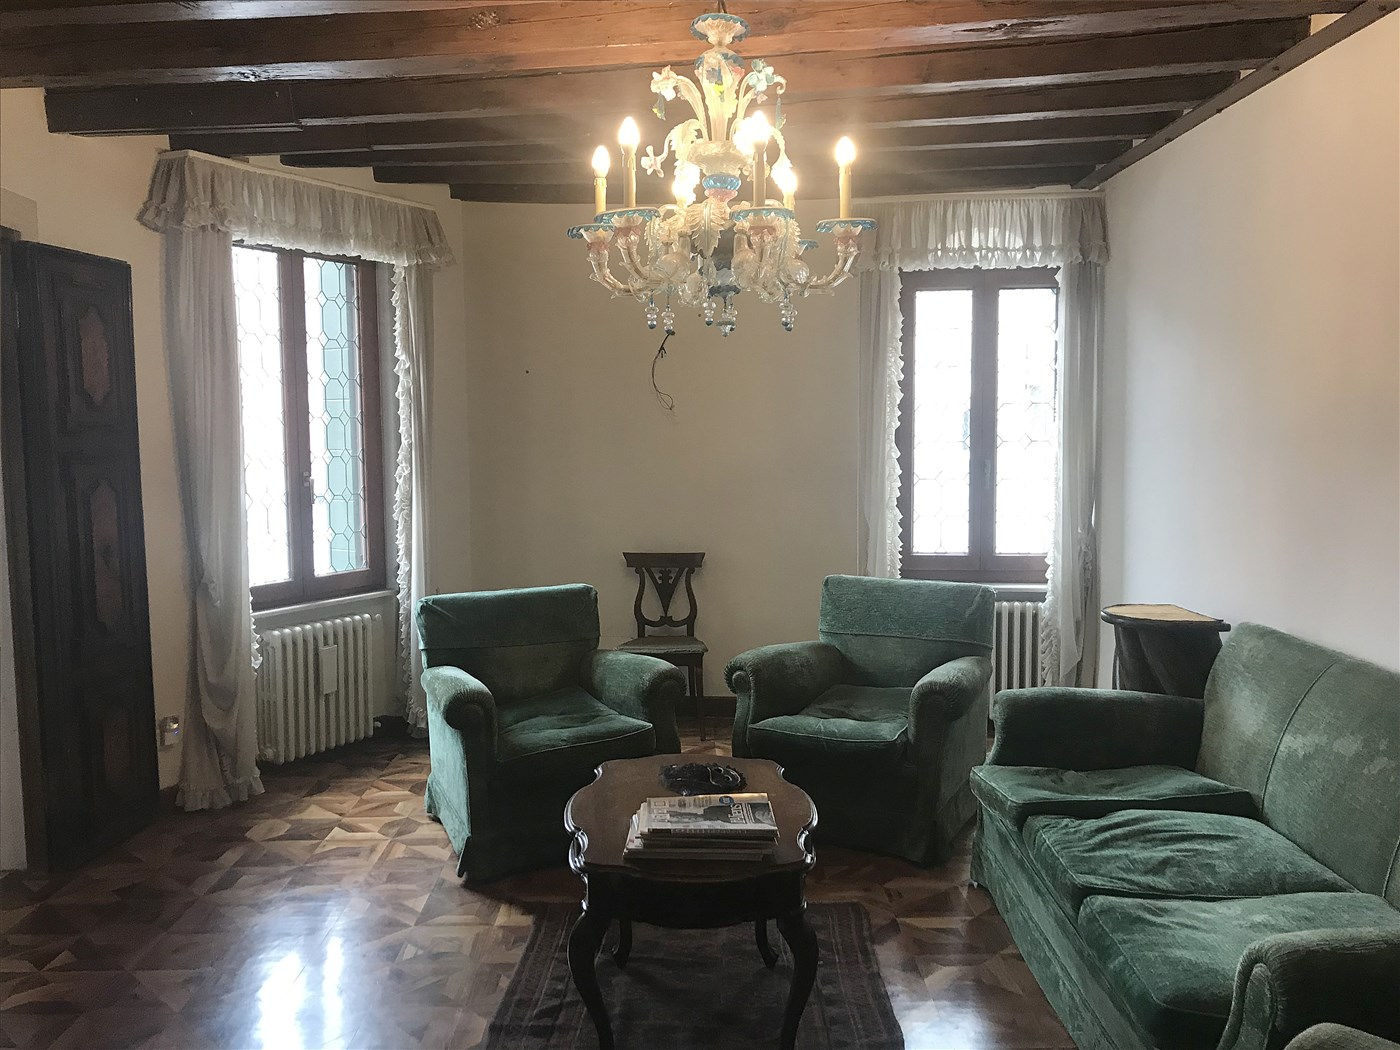 Ref. 3297 - Apartment for sale in Venice SAN MARCO - Campo Sant'Angelo